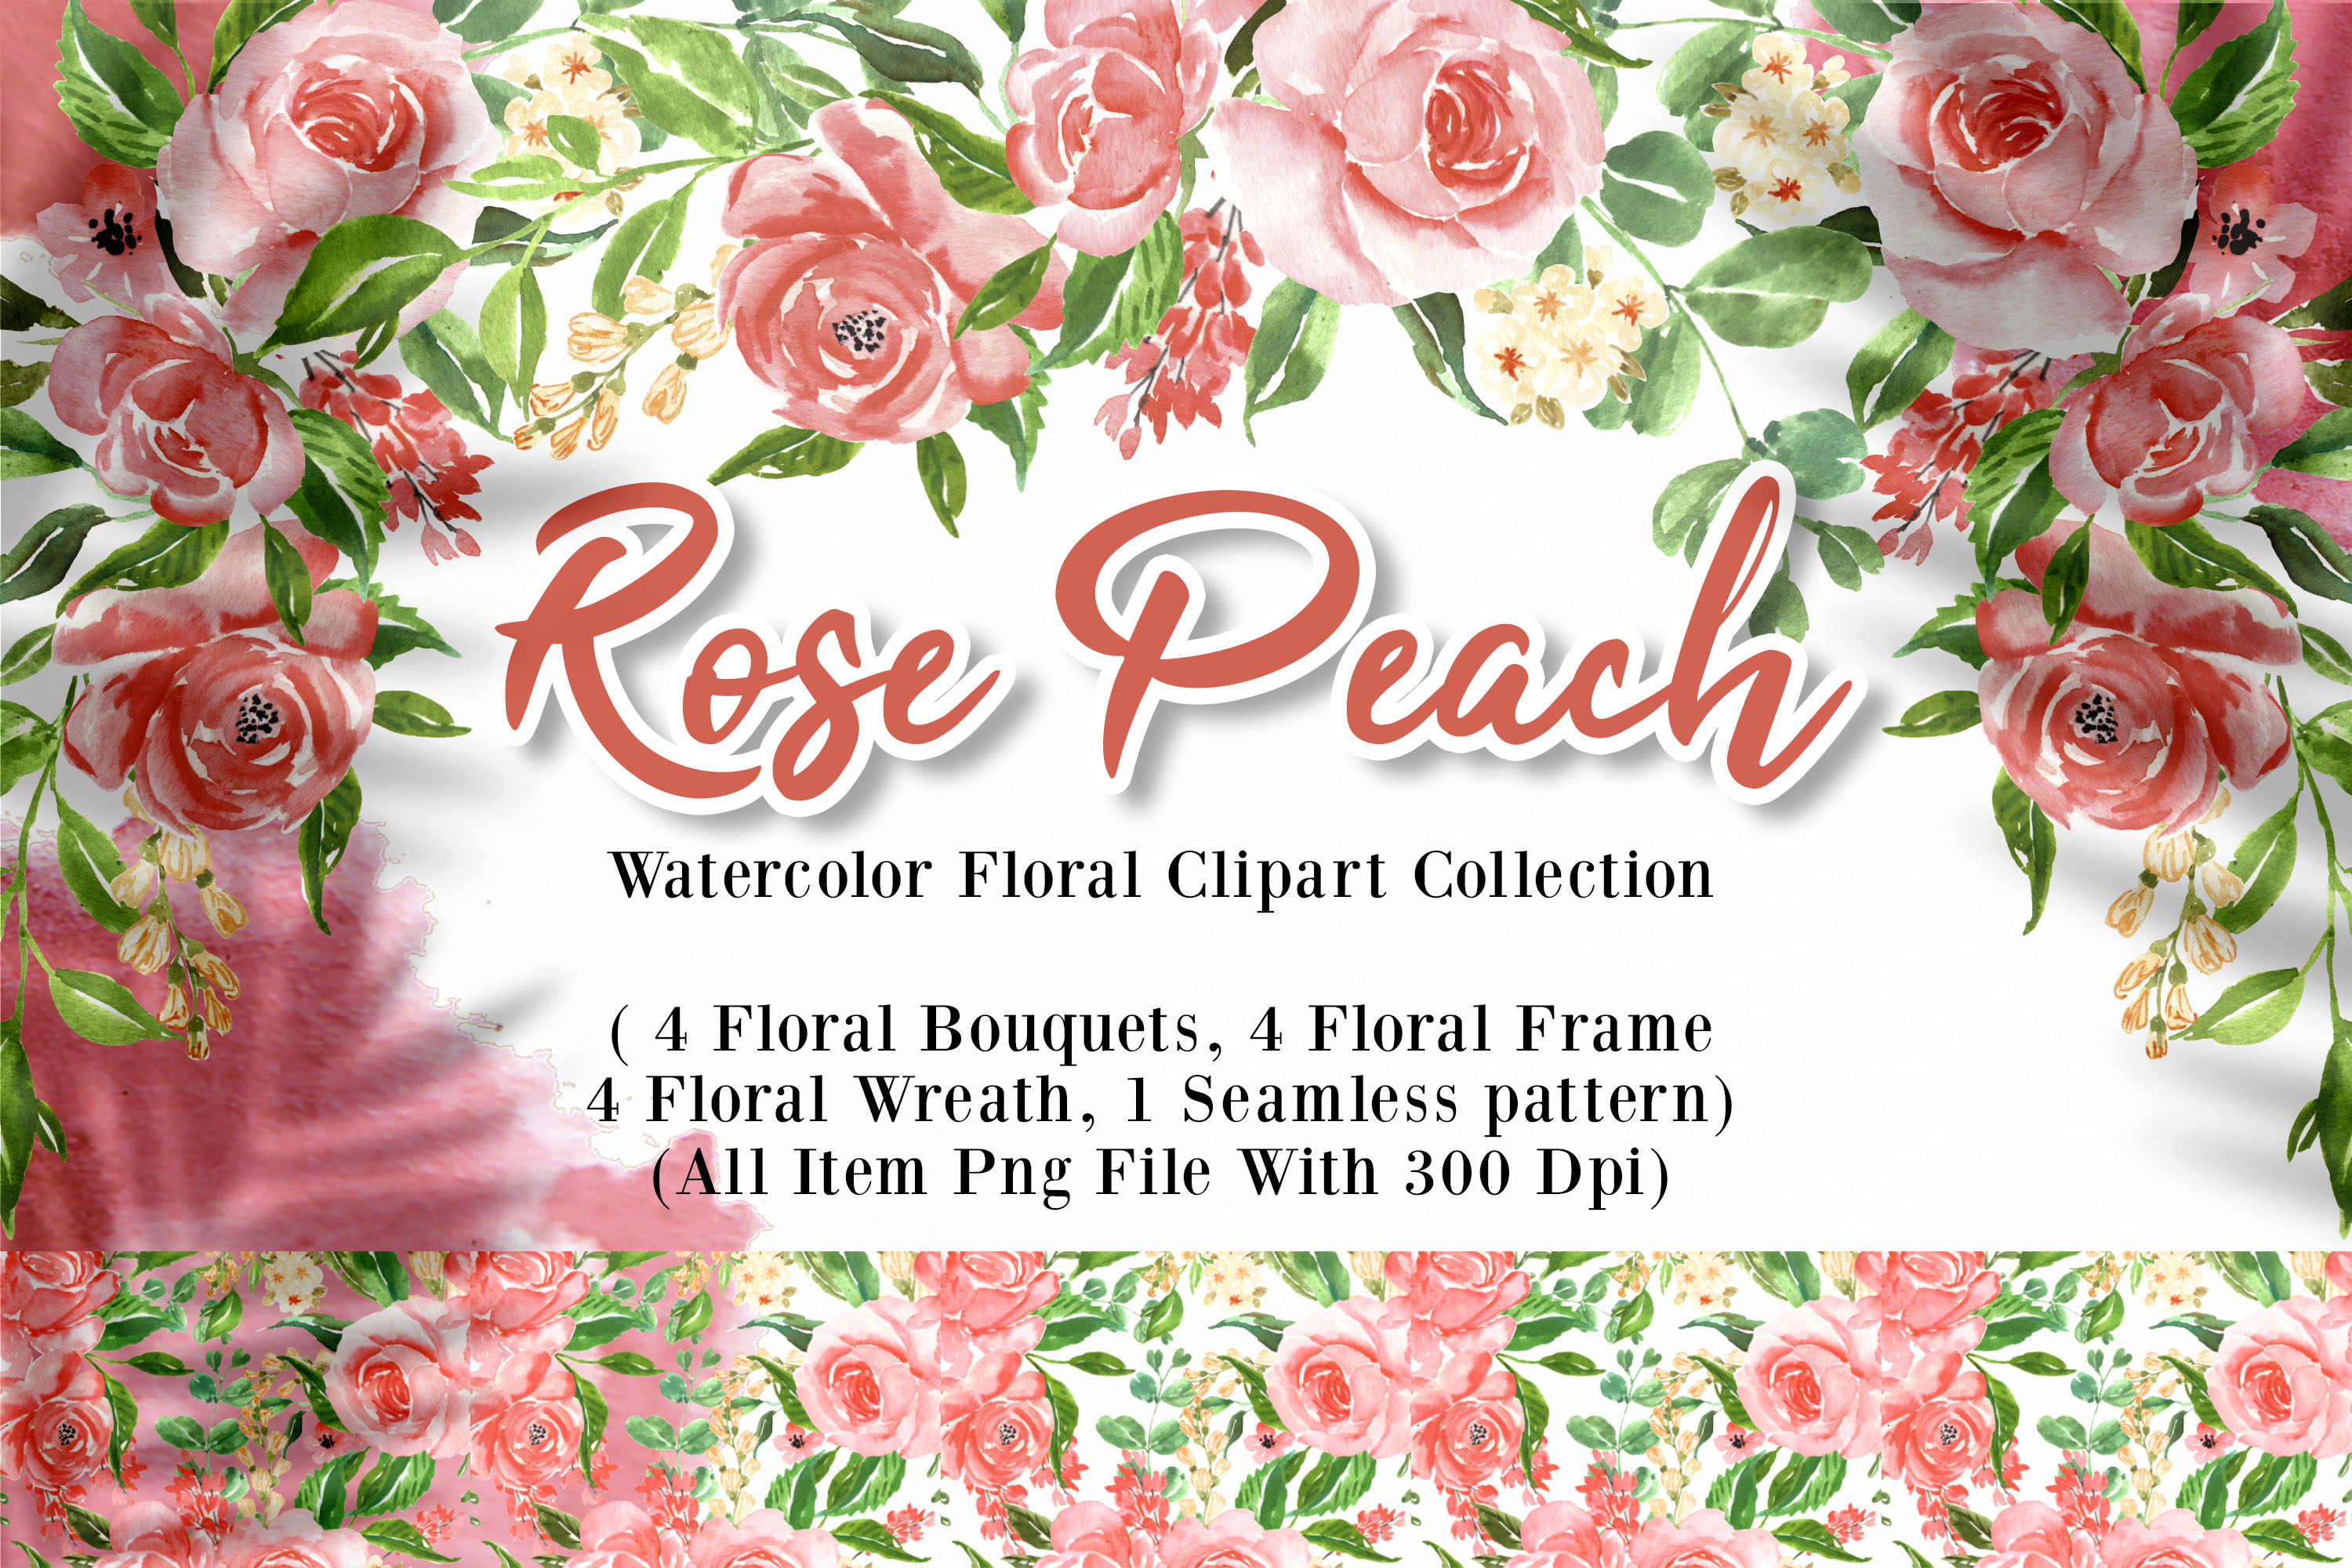 Download Free Rose Peach Watercolor Illustration Graphic By Orchidart for Cricut Explore, Silhouette and other cutting machines.